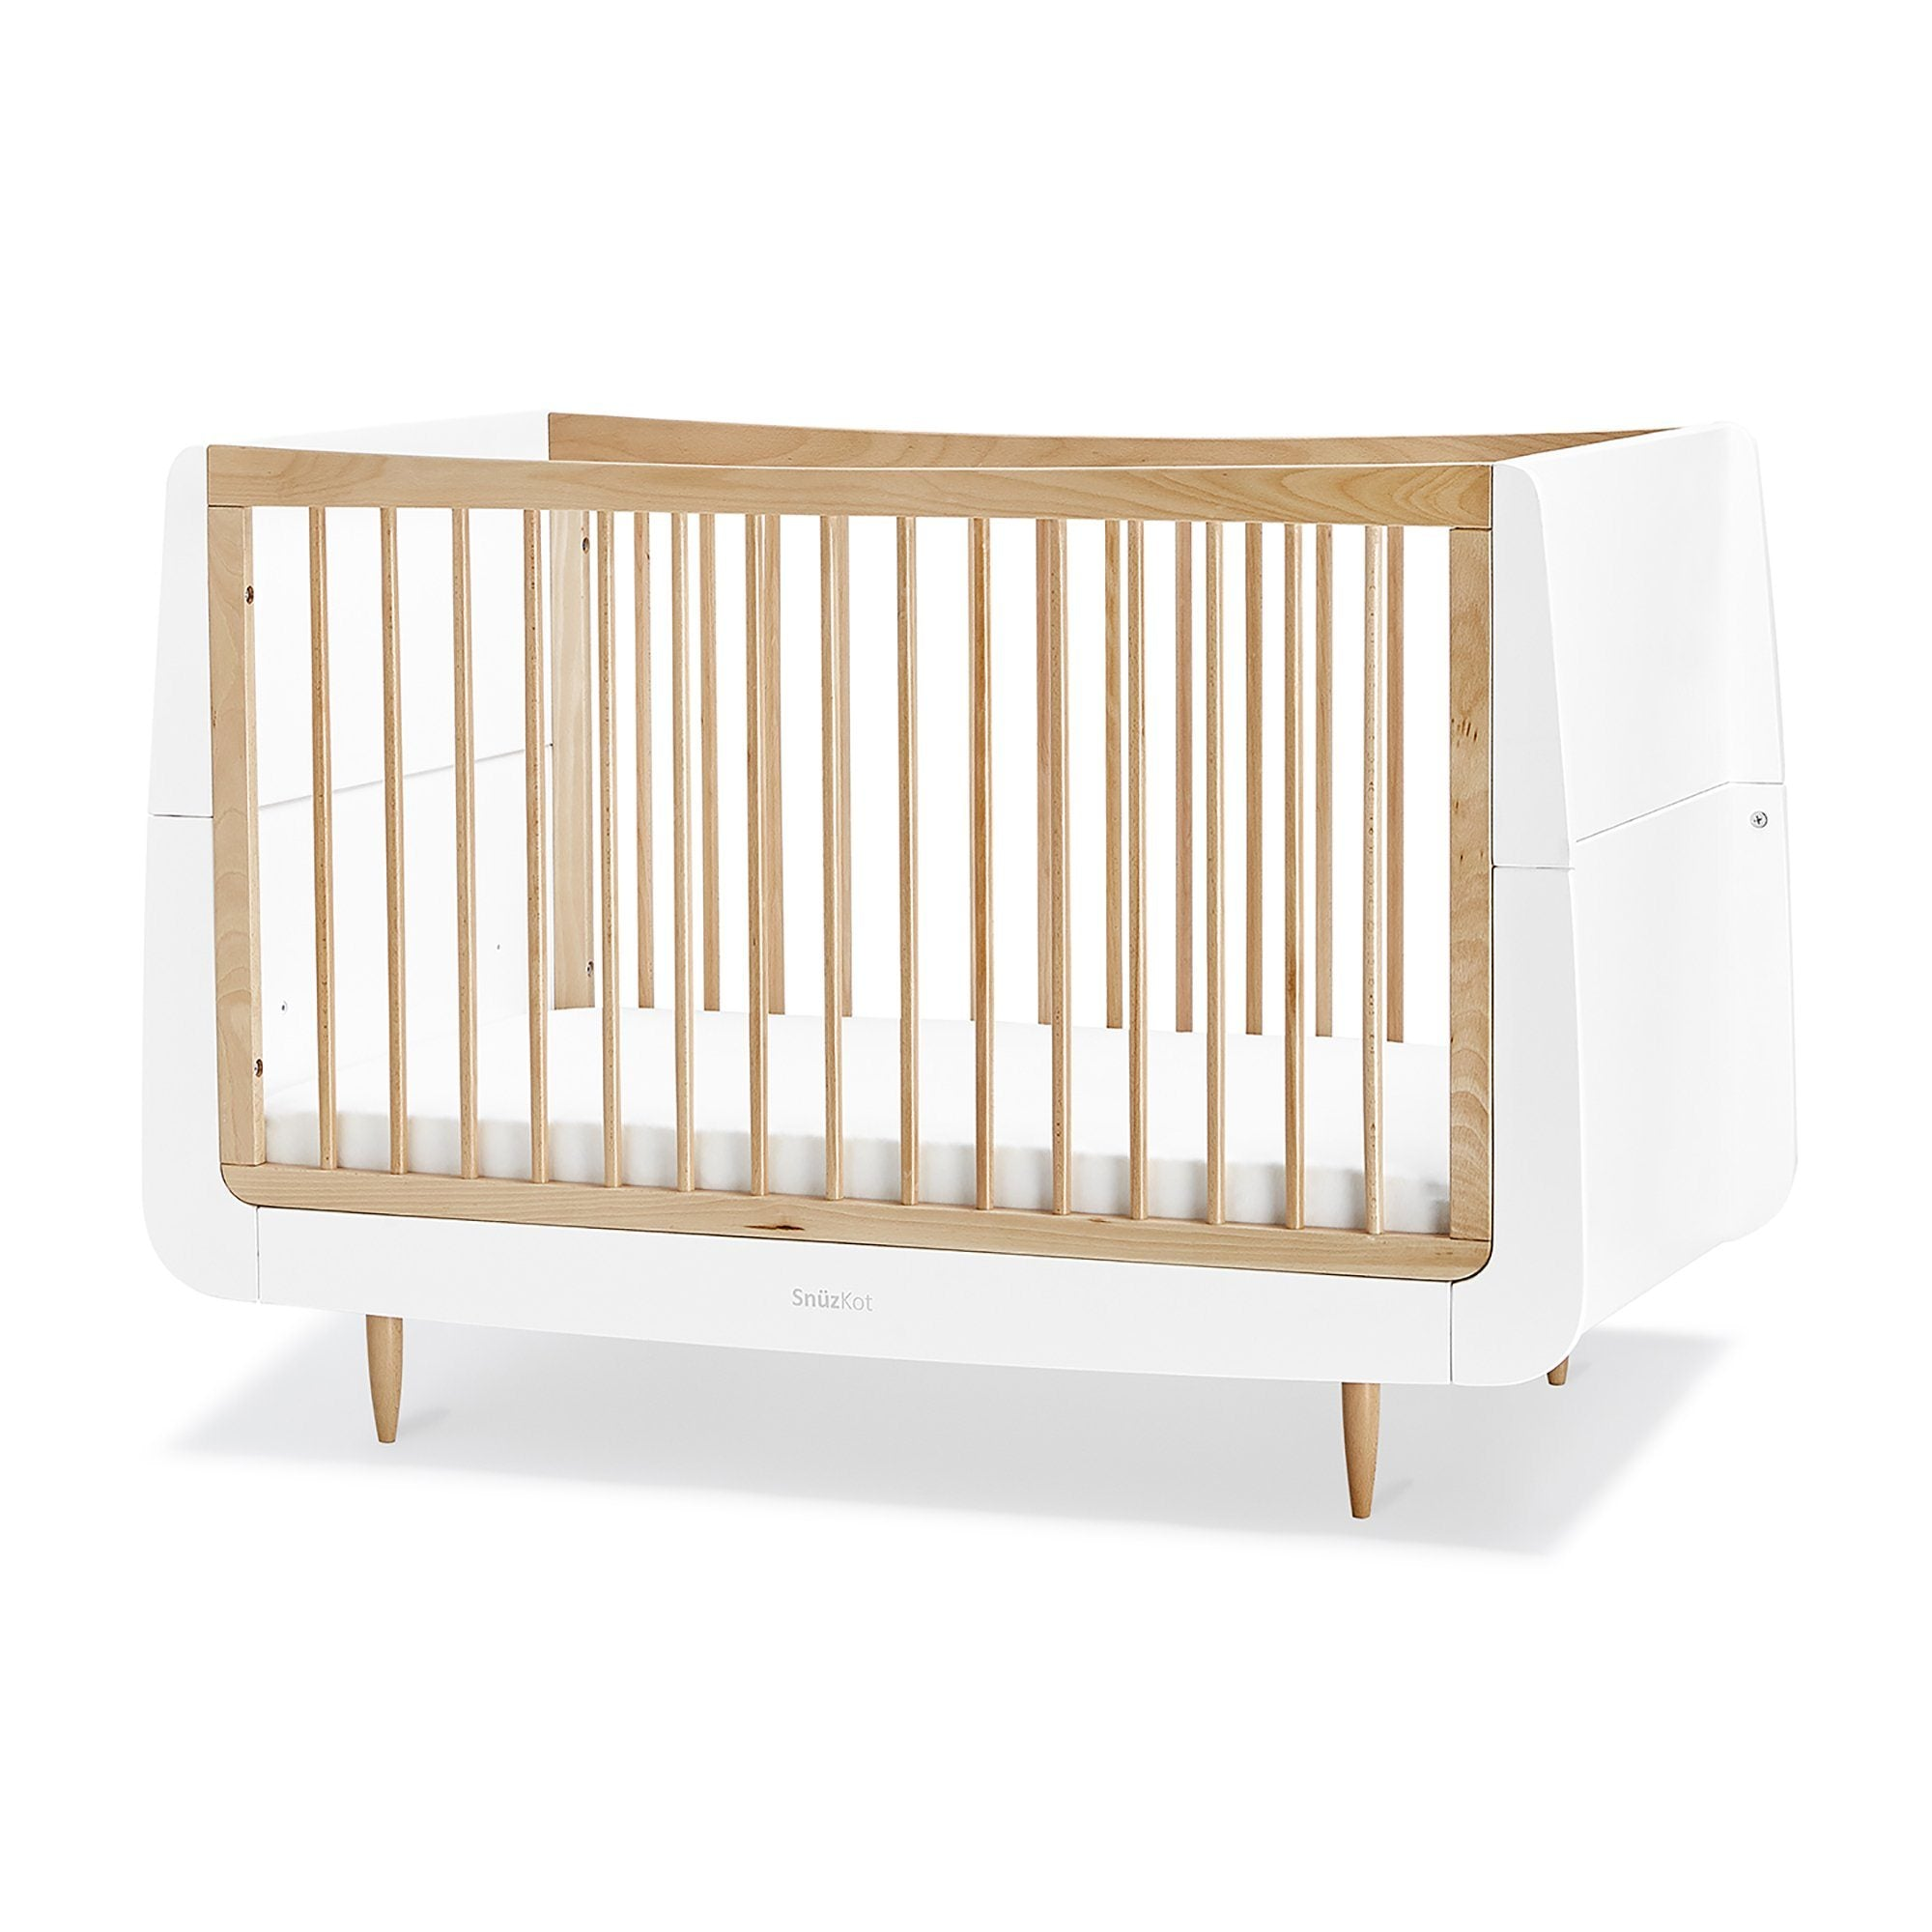 SnuzKot Skandi 2 Piece Nursery Furniture Set – Natural